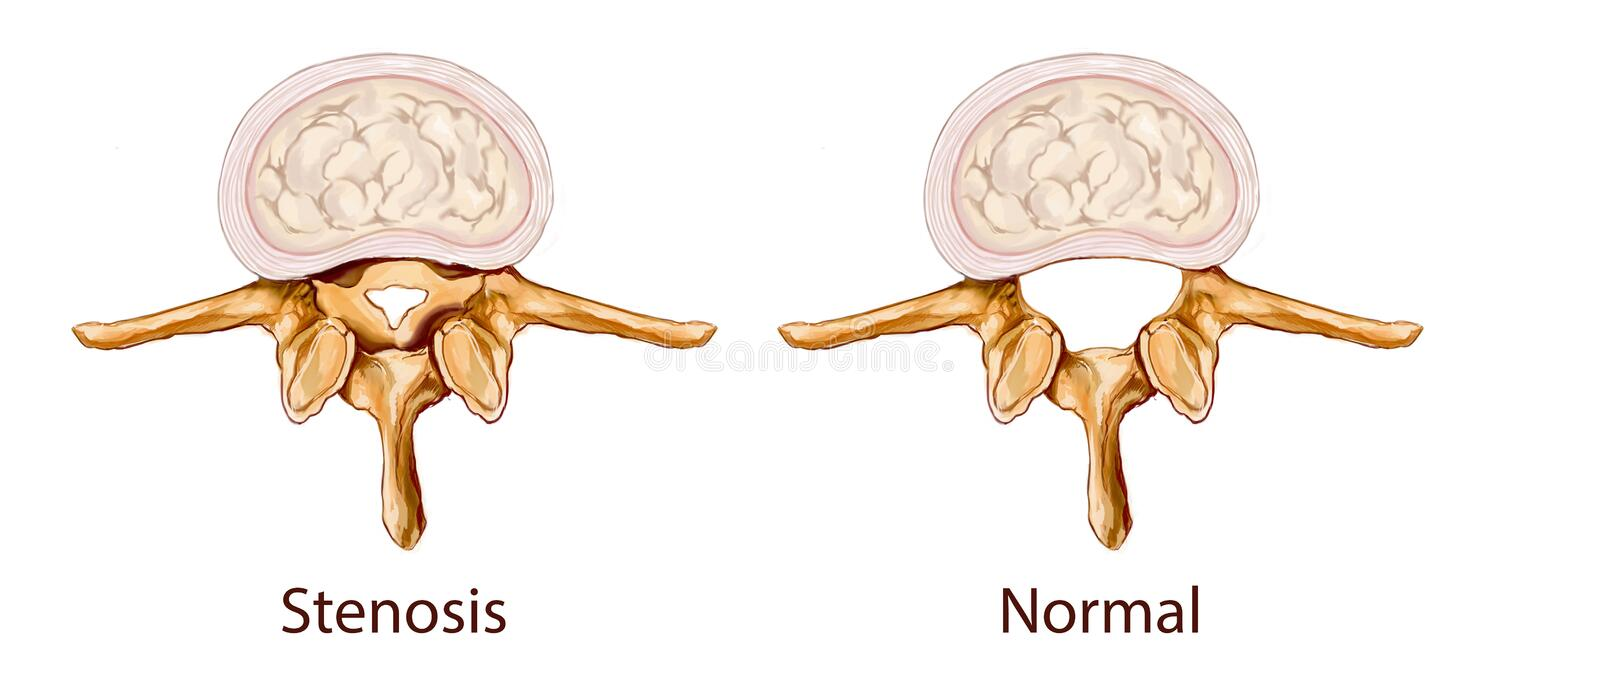 Stenosis illustration stock images